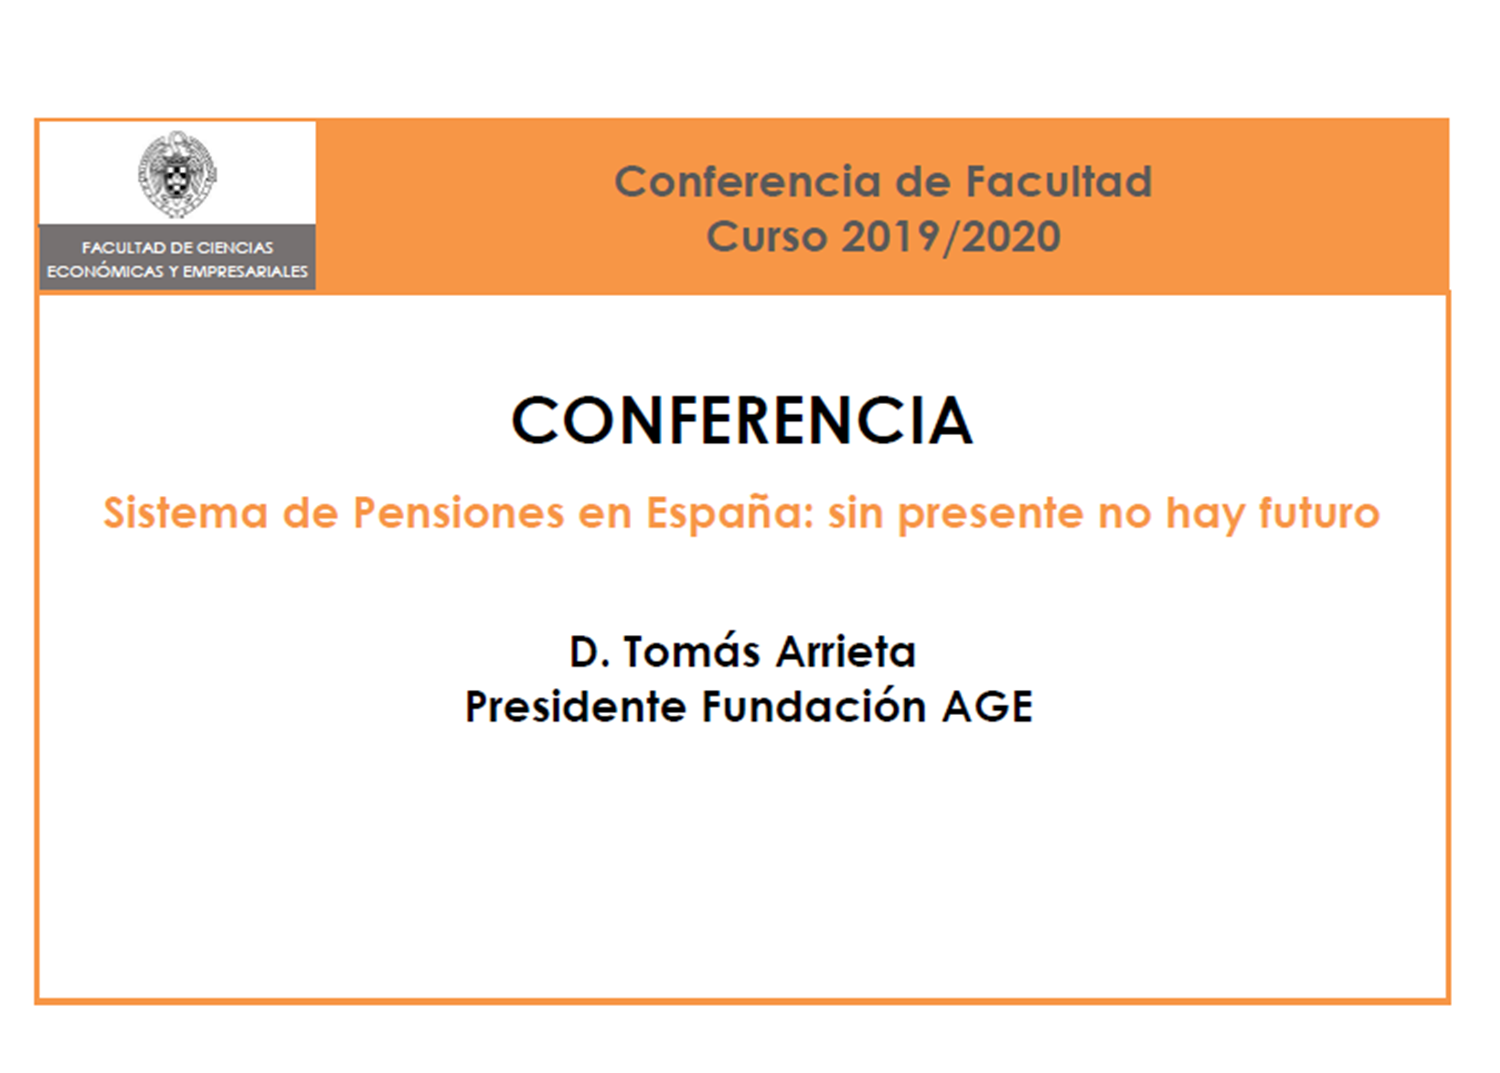 Conferencia de Facultad (on-line), 1 de abril a las 12:30 - 1